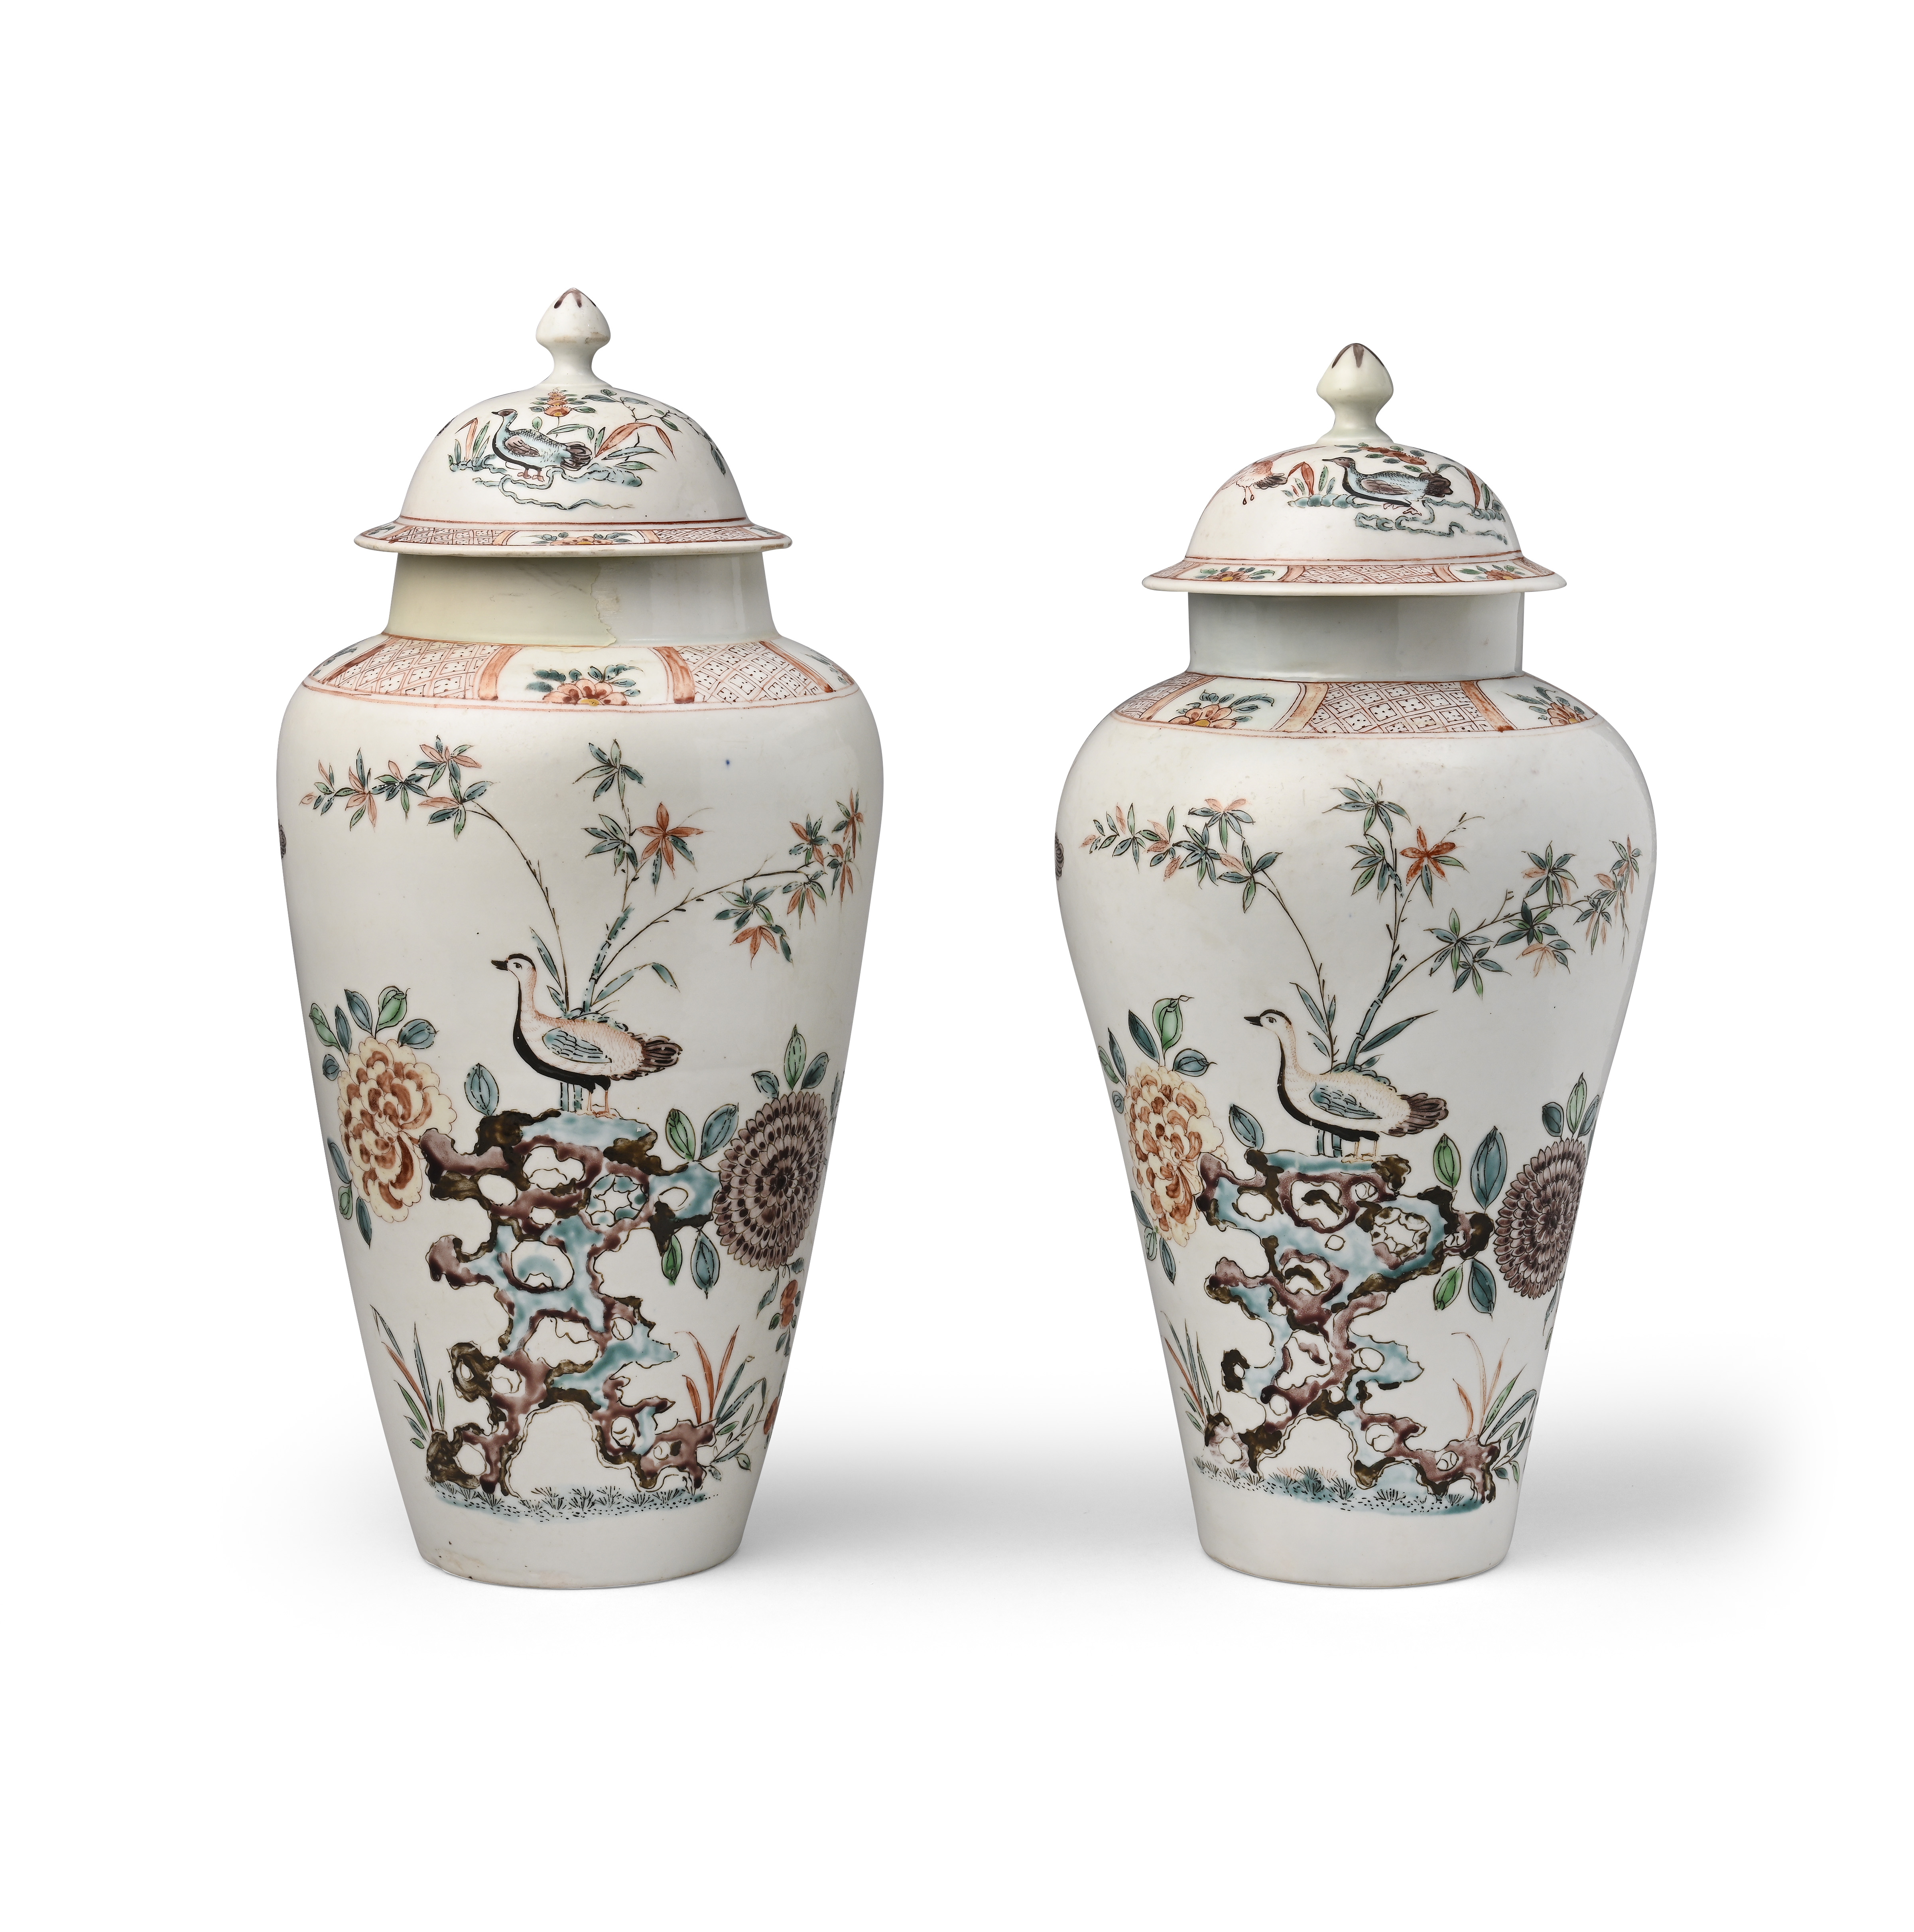 A near pair of rare Bow vases and covers c.1750, each painted with a duck standing atop holey